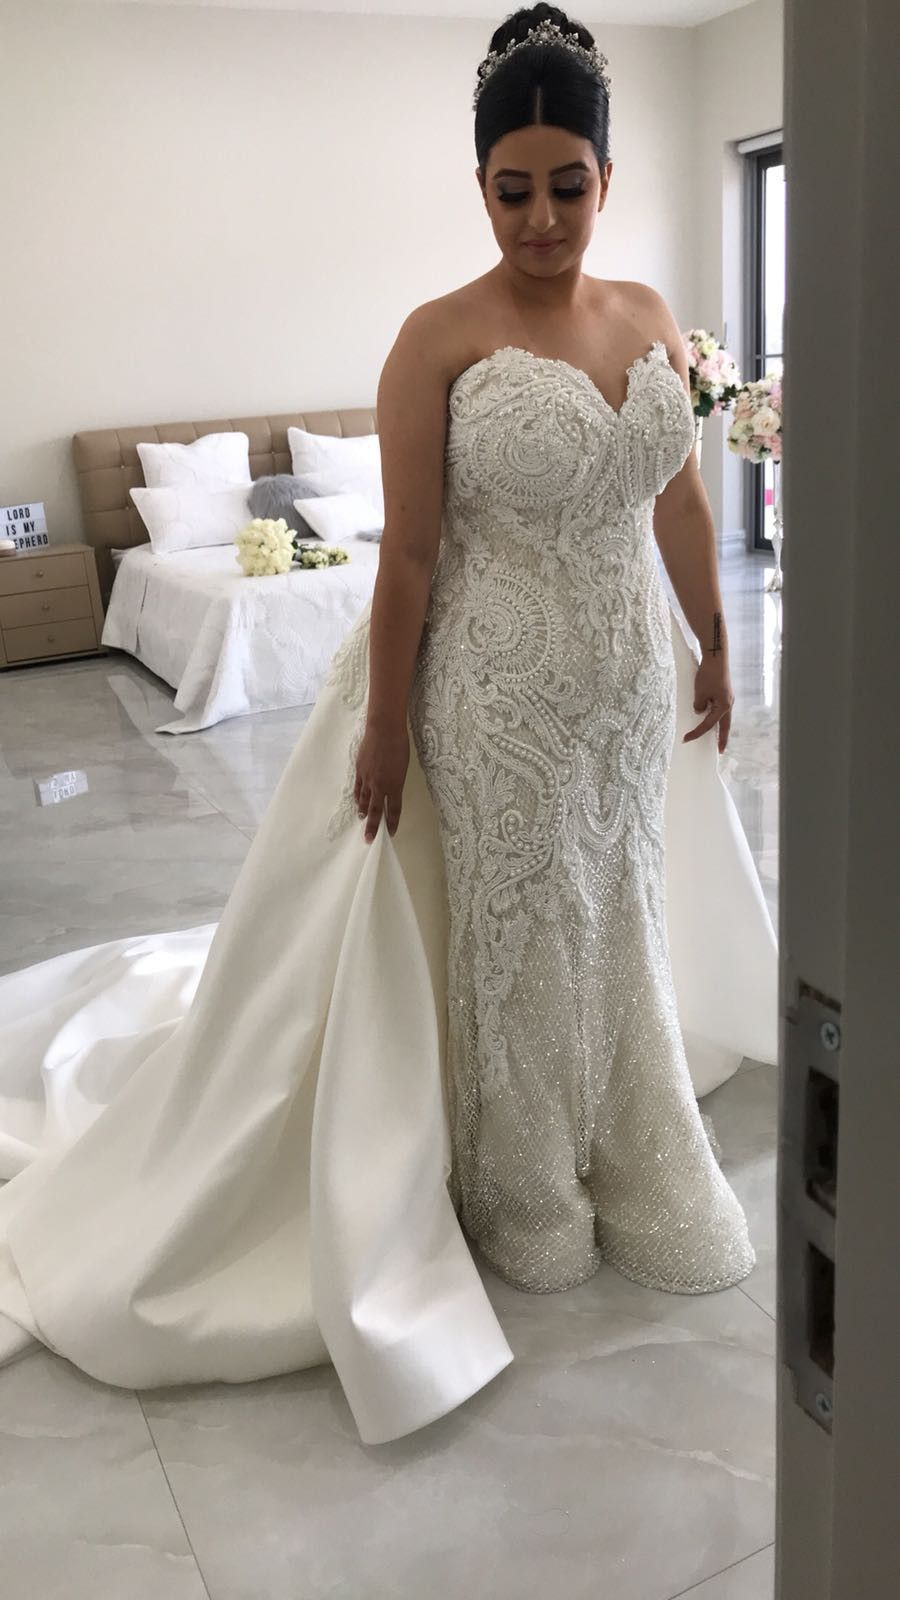 06da042c8ca31 Norma And Lili Bridal Couture Wedding Dress in 2019